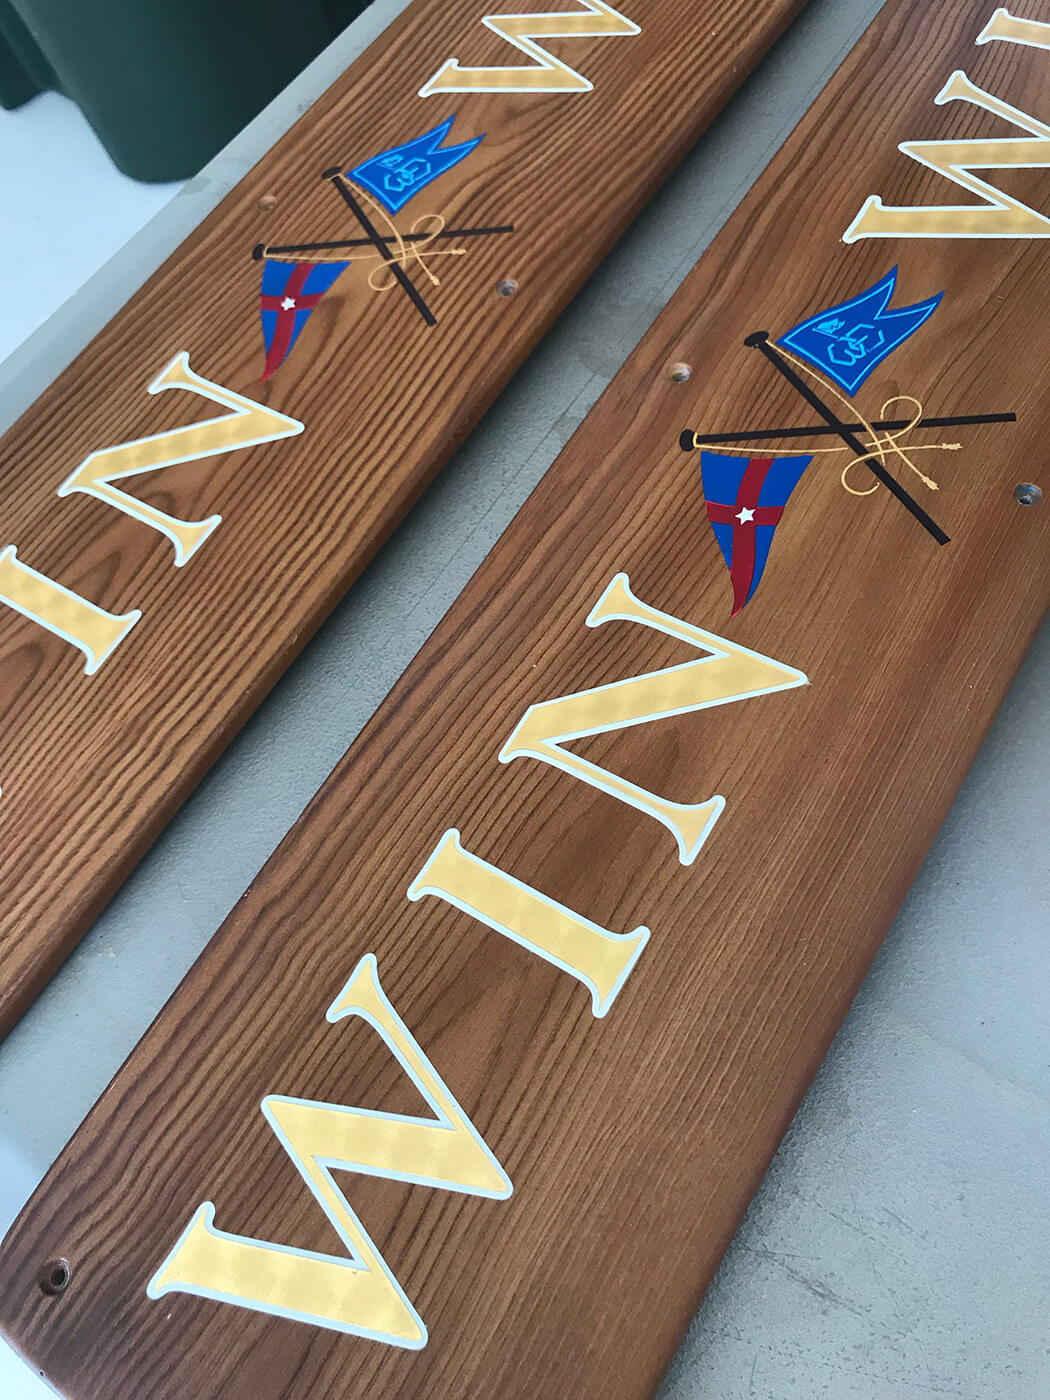 Win Win Newport Rhode Island Boat Transom nameplates sideboards marine name letters graphics flags